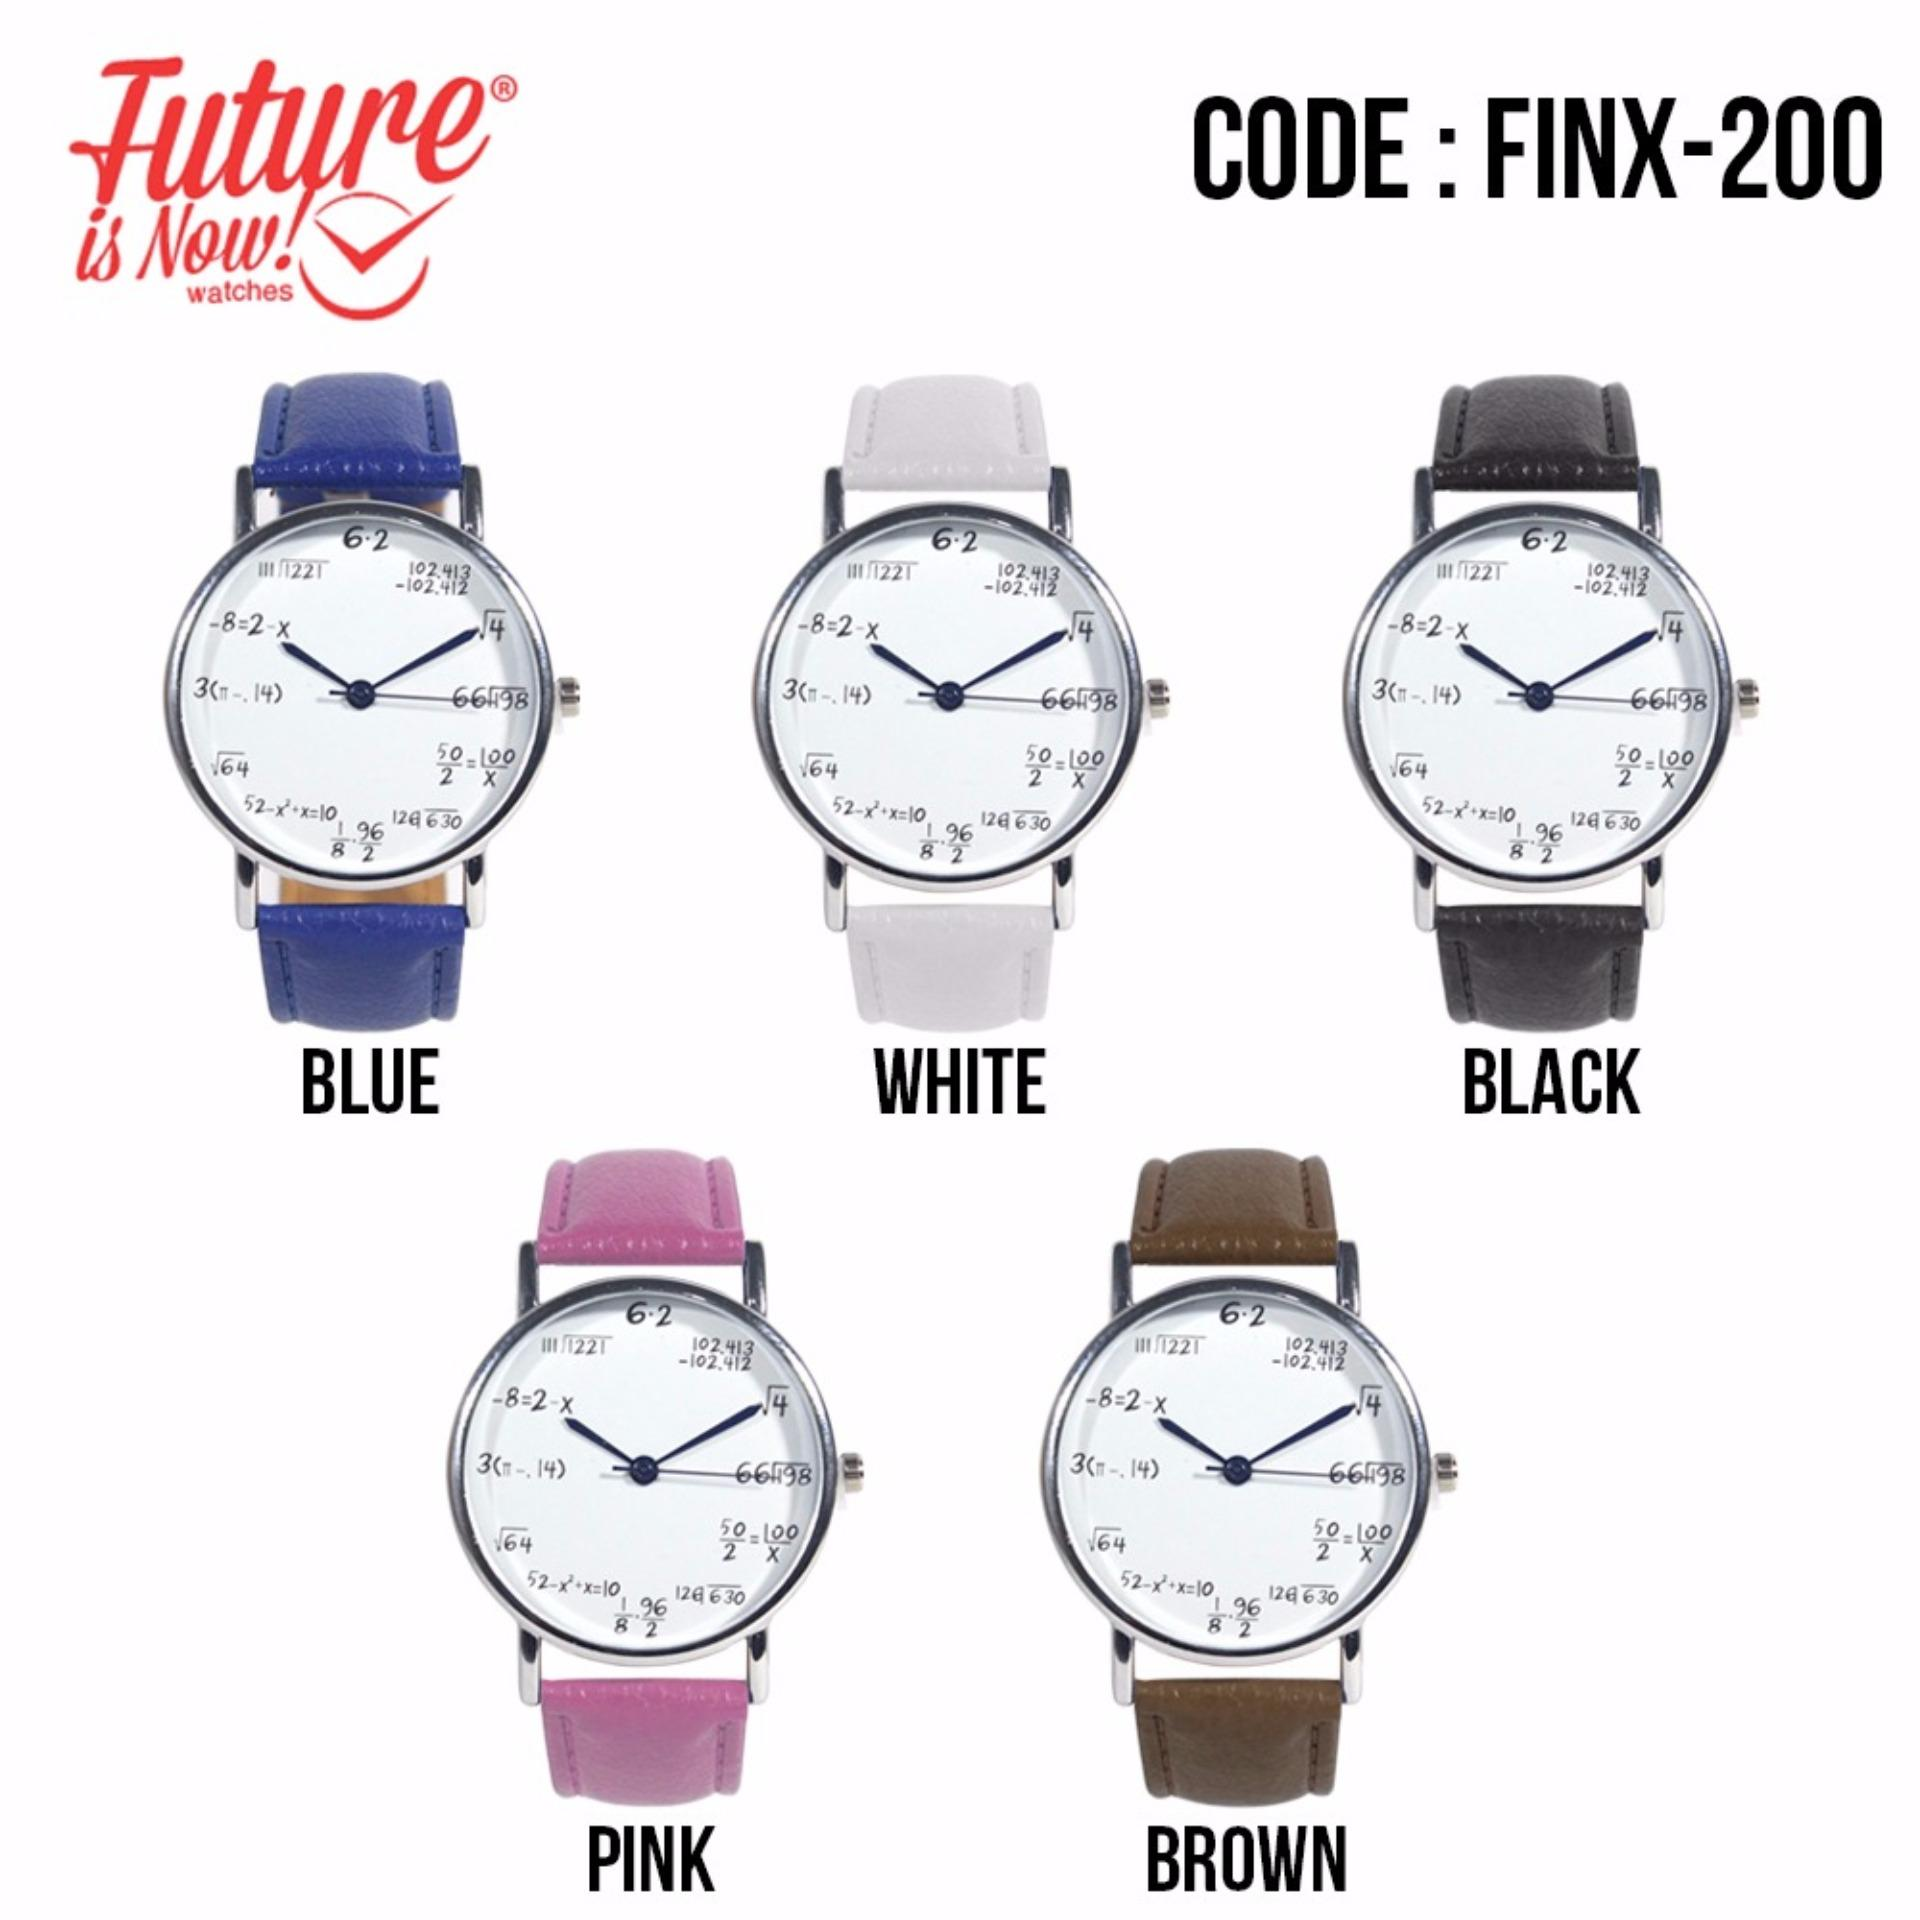 Spesifikasi Colorful Round Analog Watches Math Finx 200 Yg Baik